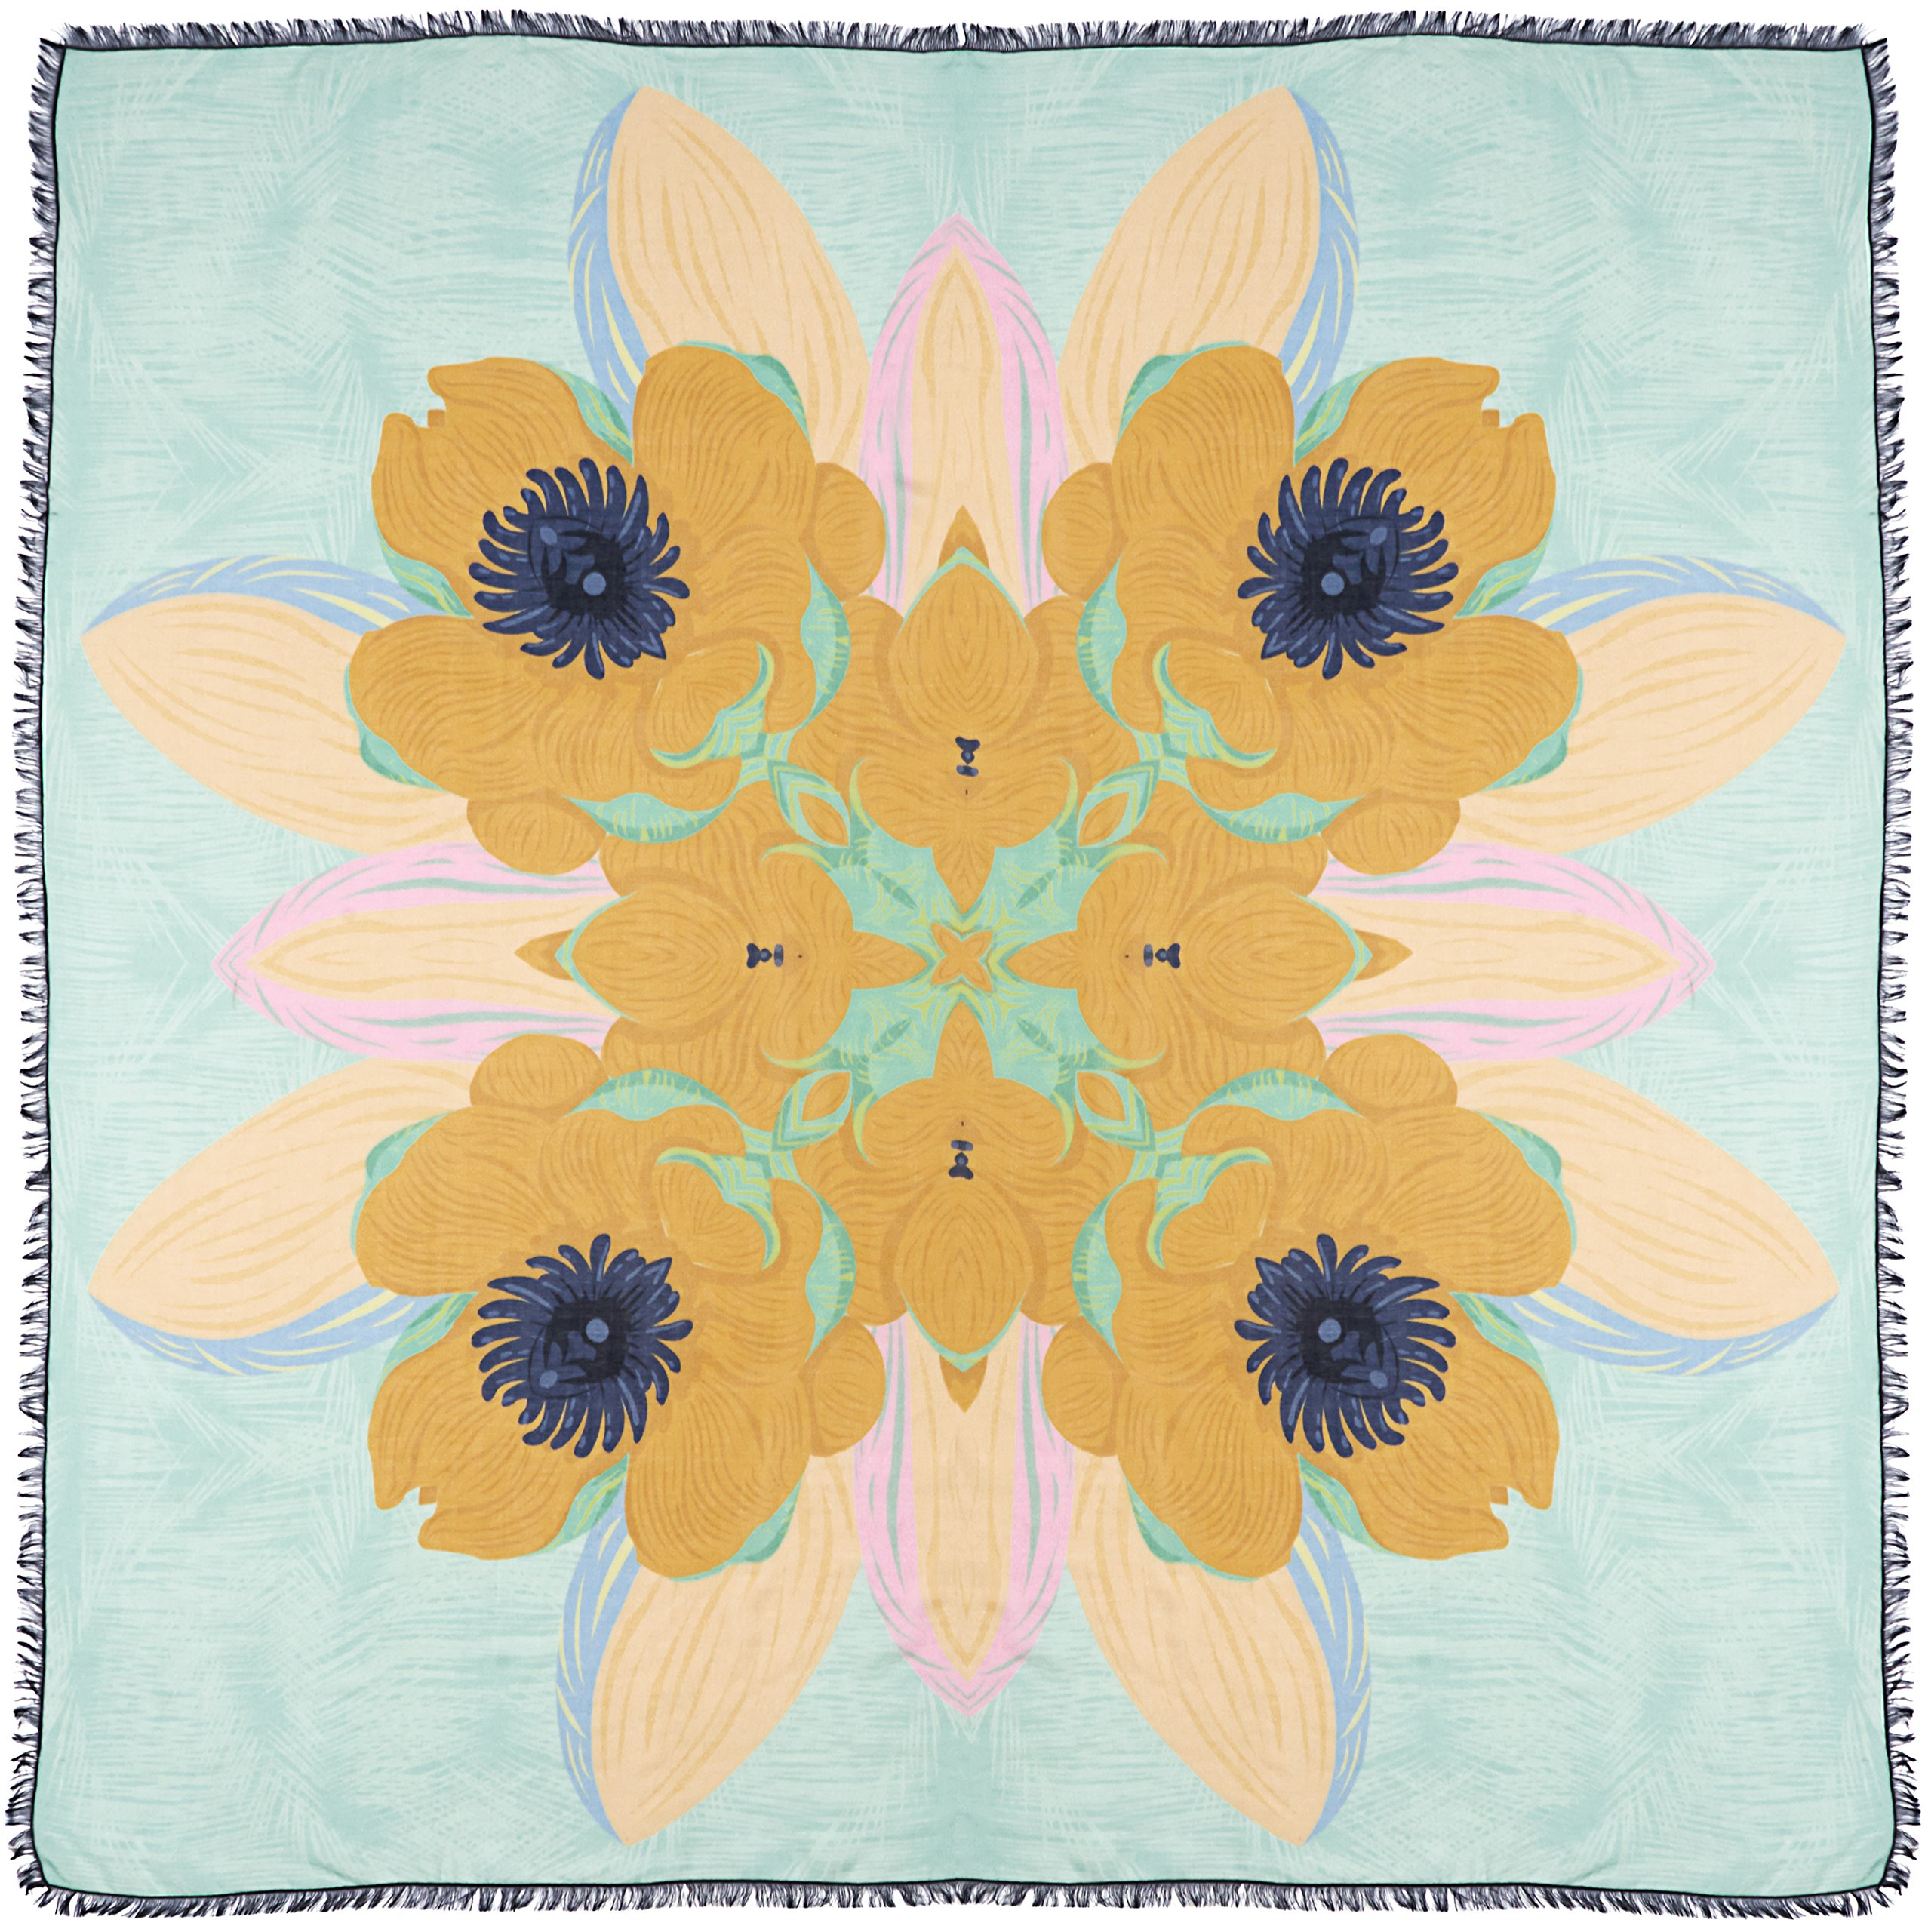 R. Culturi Handmade in Italy Modal Silk Luxury Artwork Scarf Shawl (Teal/Yellow) by R. Culturi